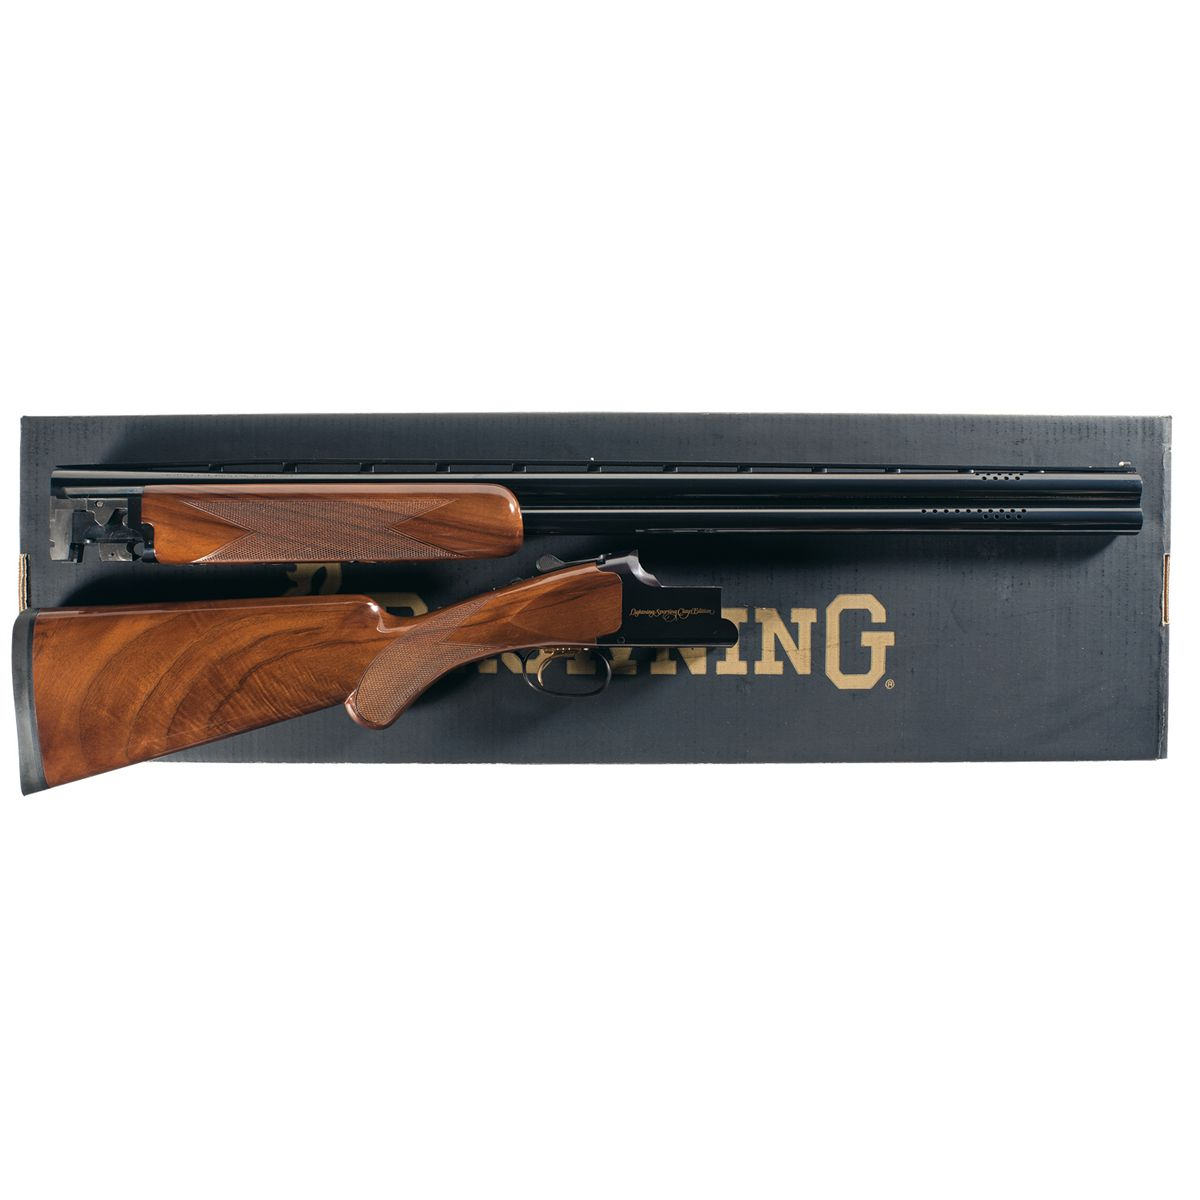 Browning Citori Lightning Sporting Clays Edition Over/Under Shotgun with Box